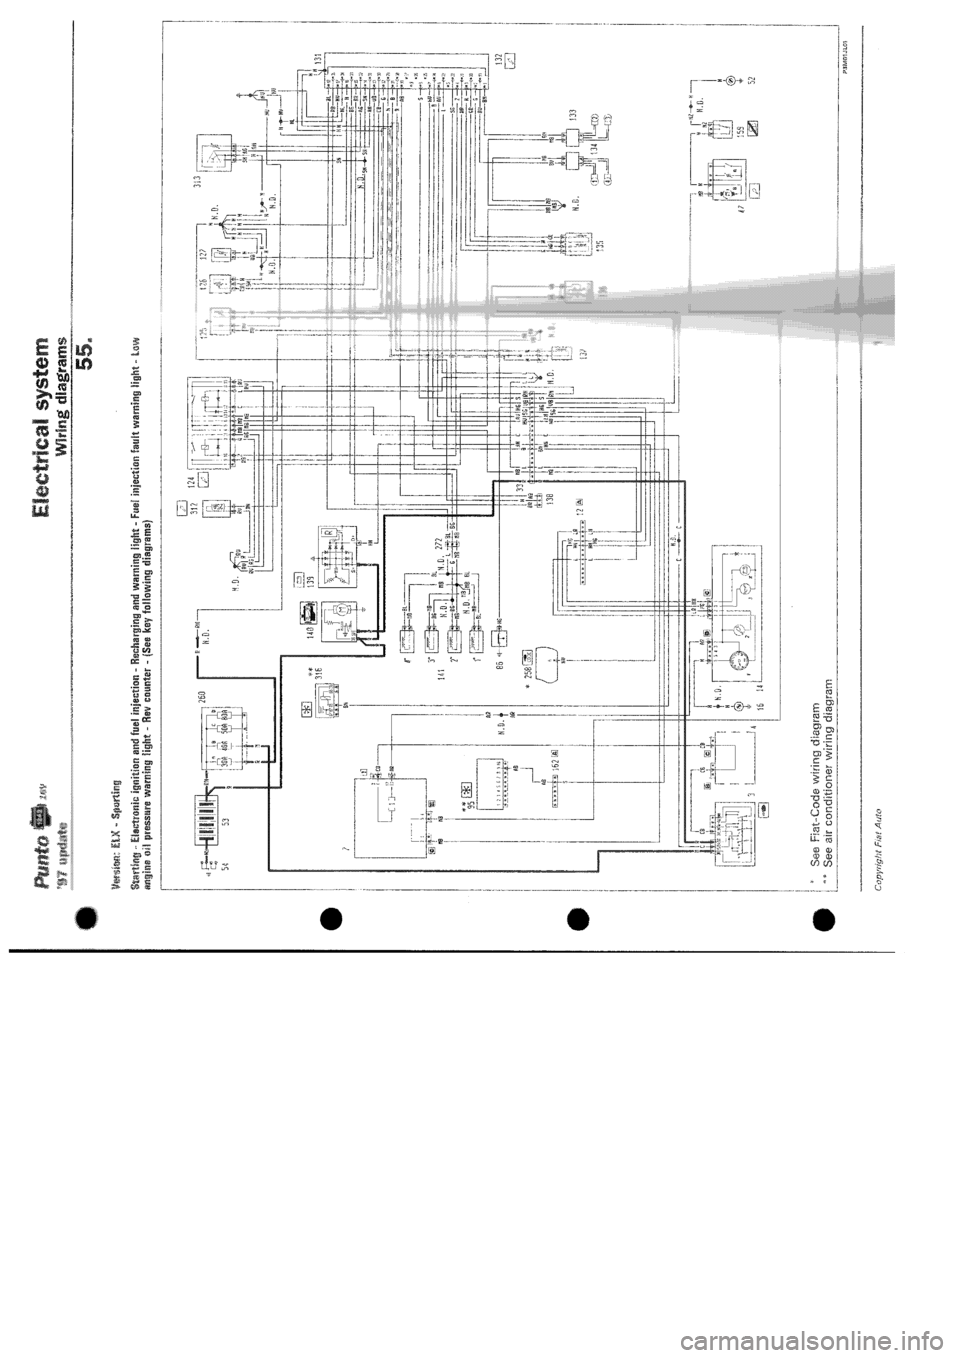 hight resolution of wiring diagram for fiat ducato wiring library 1979 fiat spider wiring diagrams w960 4692 1 fiat doblo